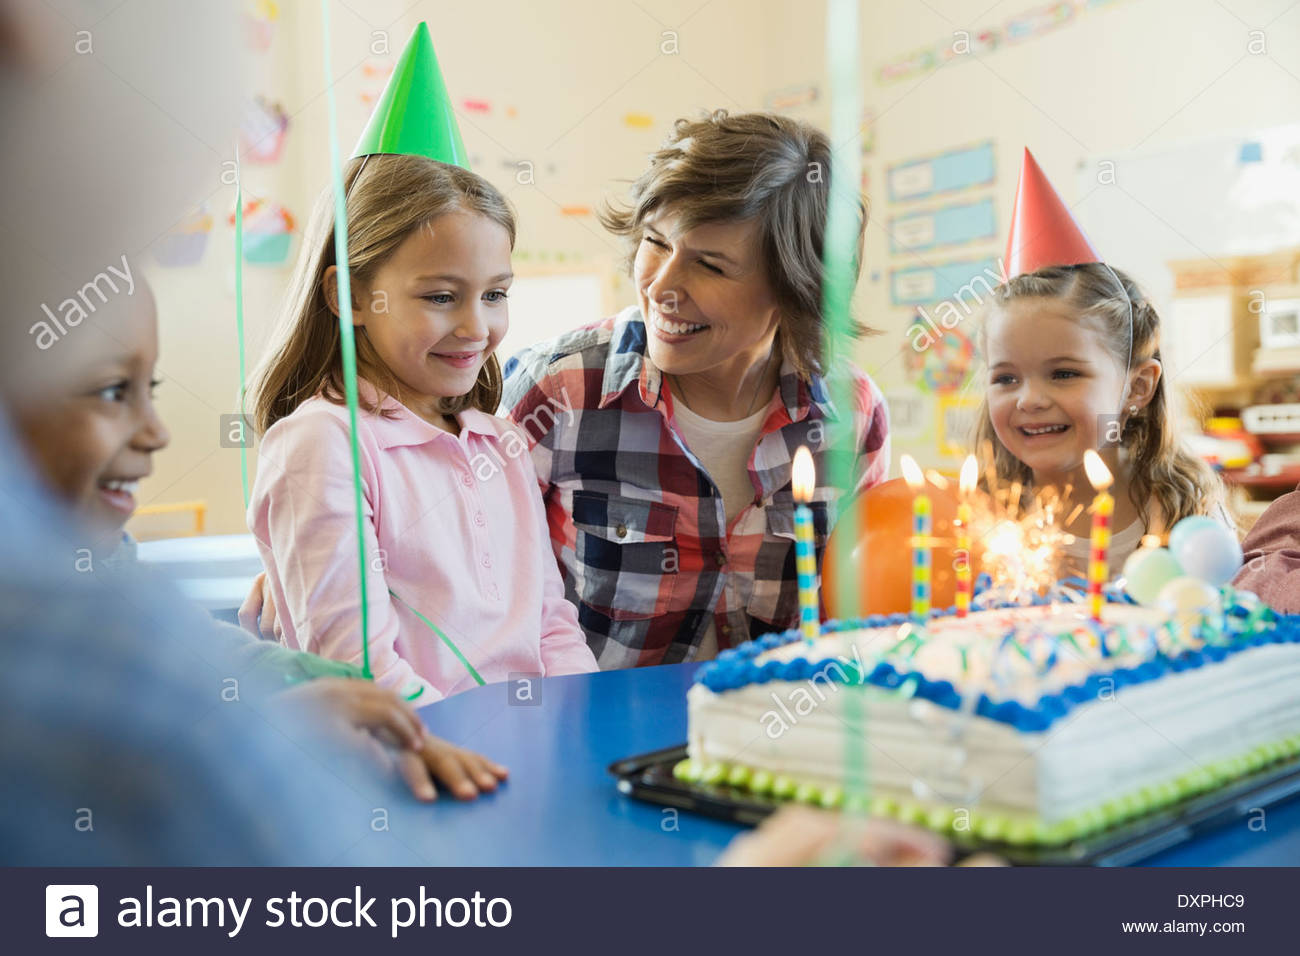 Teacher with kids celebrating birthday in elementary school - Stock Image